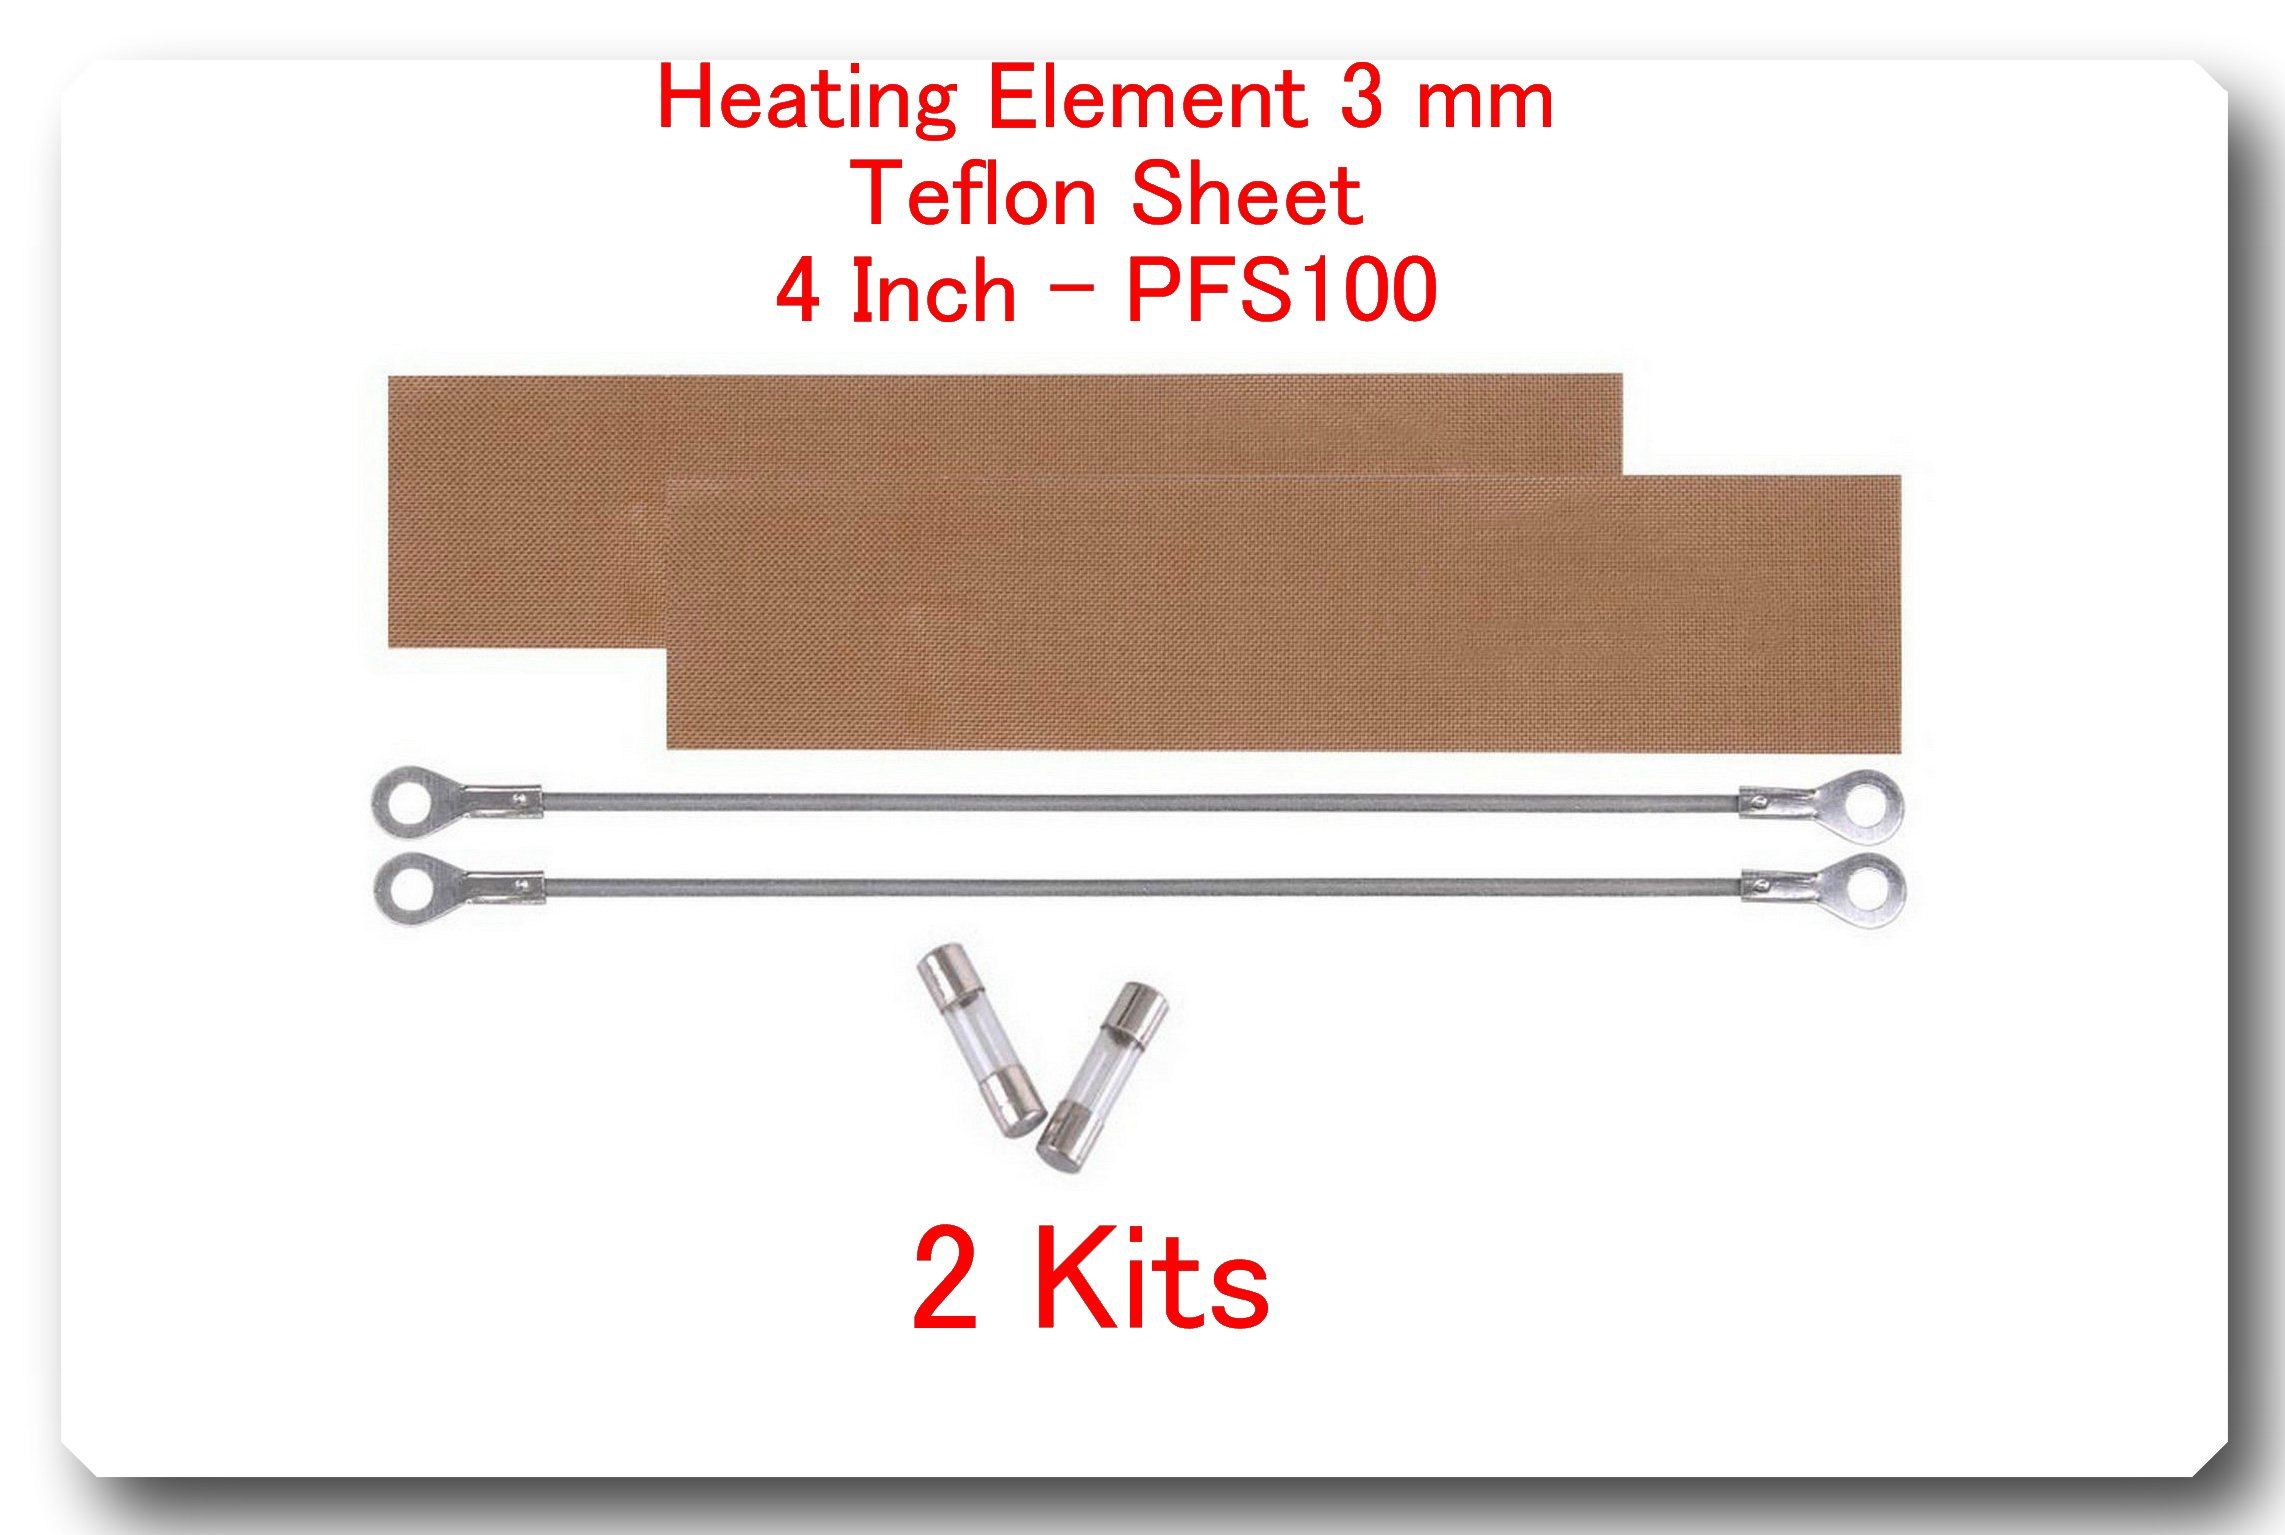 "(2 Kits) Replacement Elements for Impulse Sealer PFS-200 8""(2 Heating Elements 3 mm+2 Teflon Sheets)"